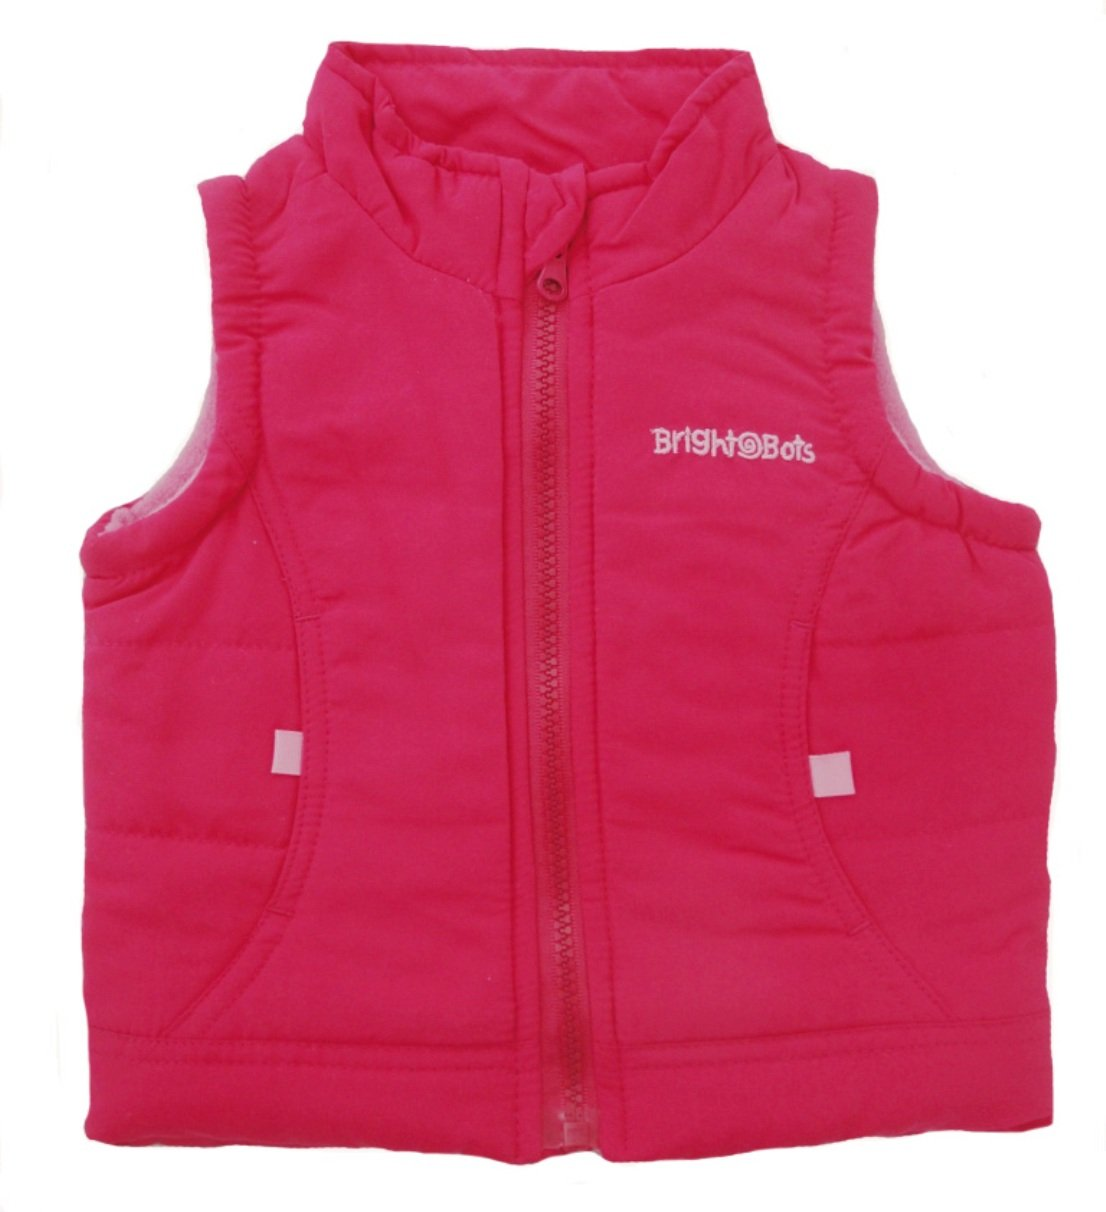 Bright Bots 2/3y Girl Gilet Bodywarmer Jacket - Pink